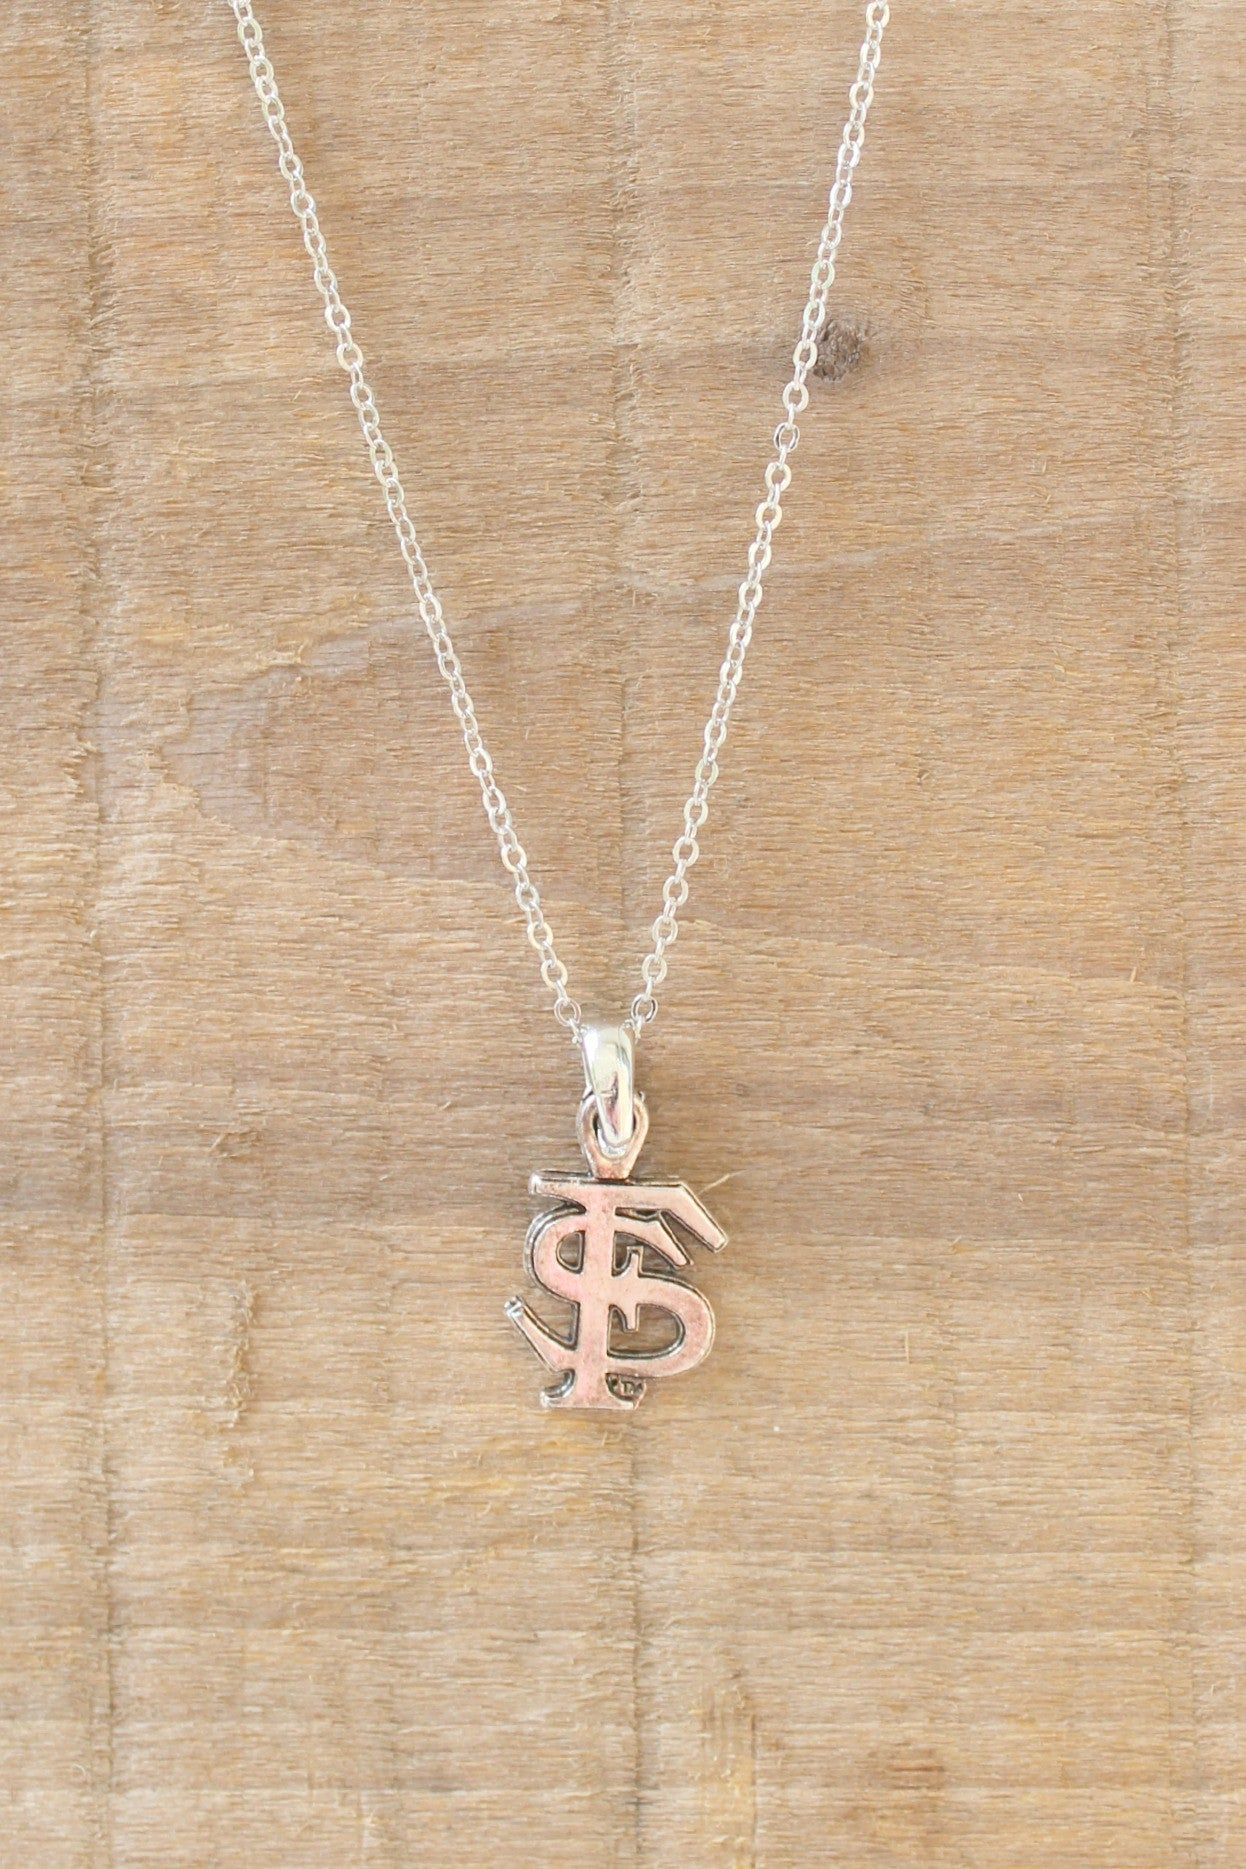 FSU Necklace, Silver